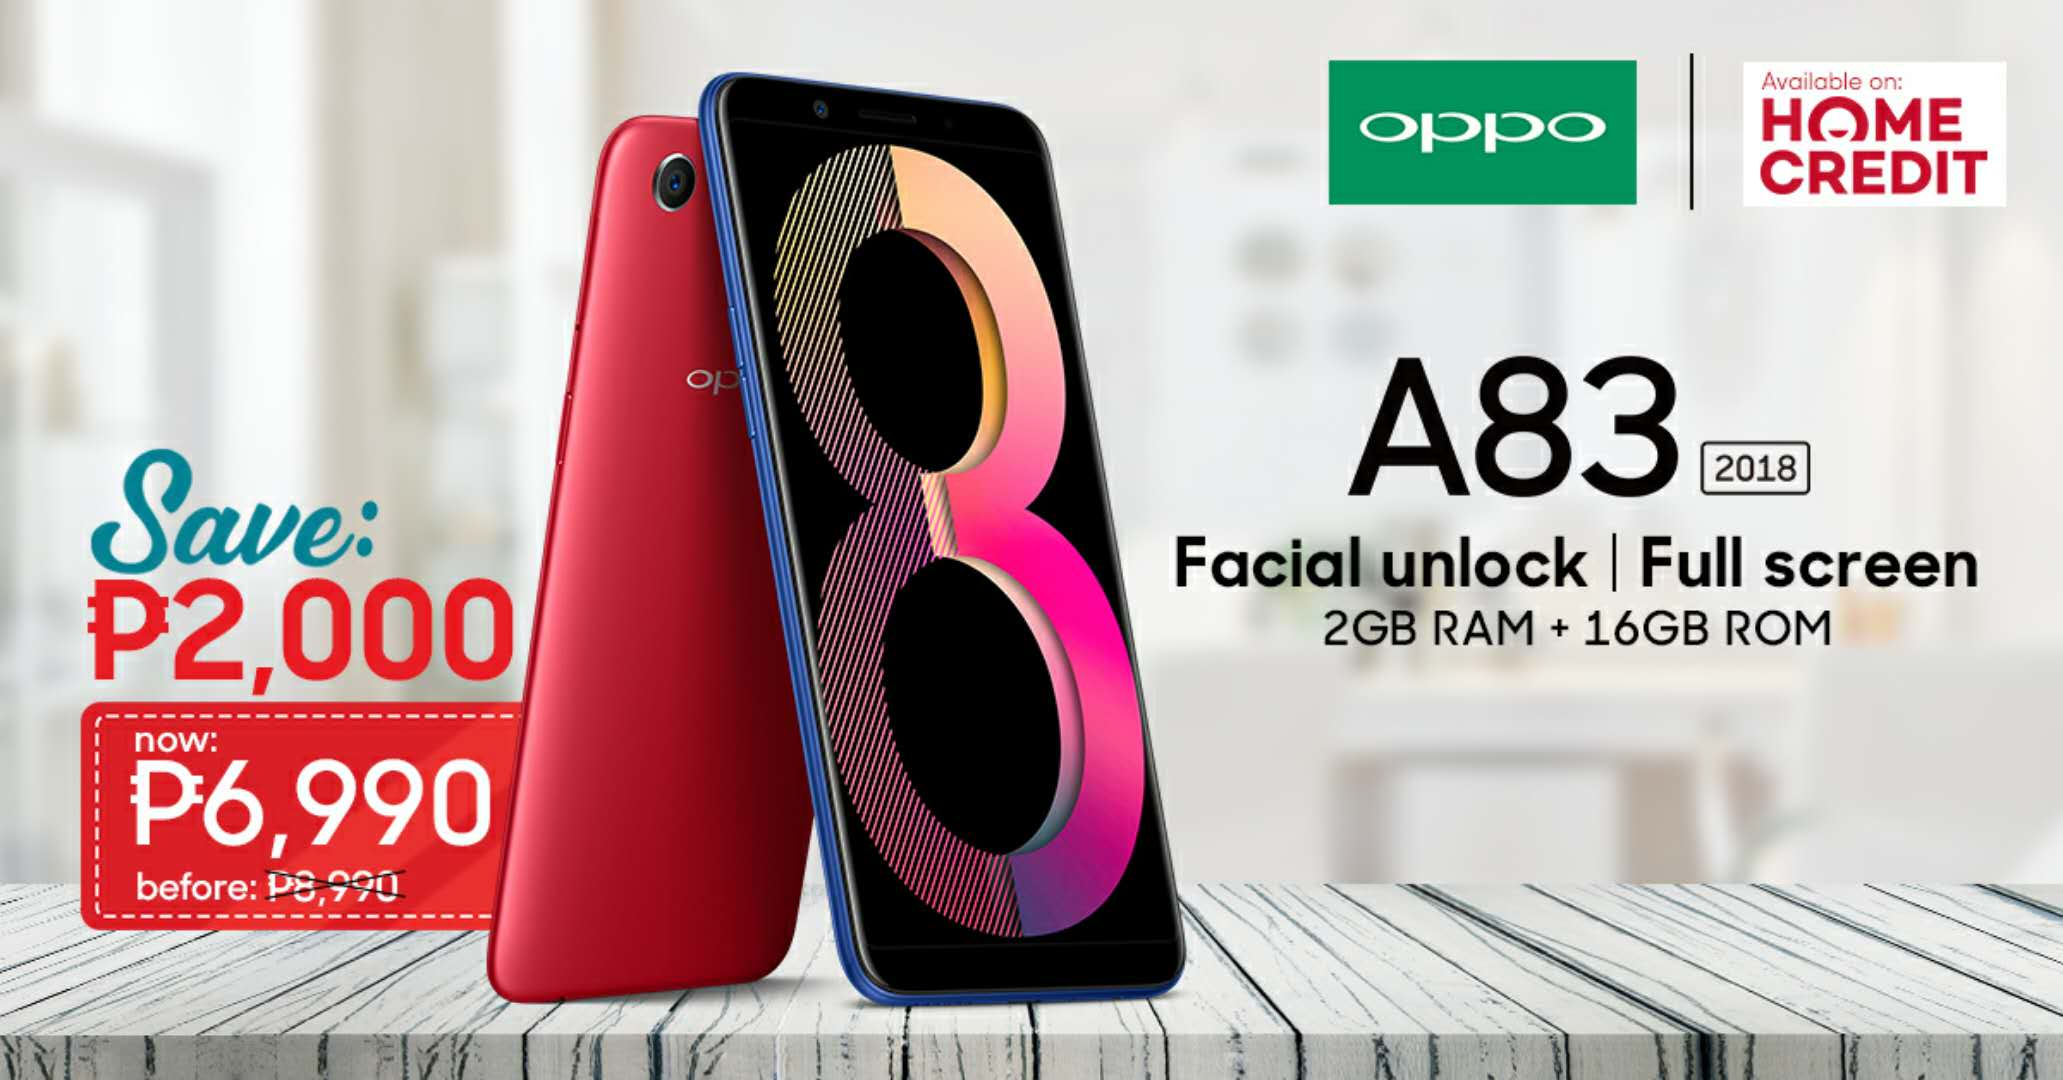 OPPO A83 now more competitive at PHP 6,990 with Face Unlock